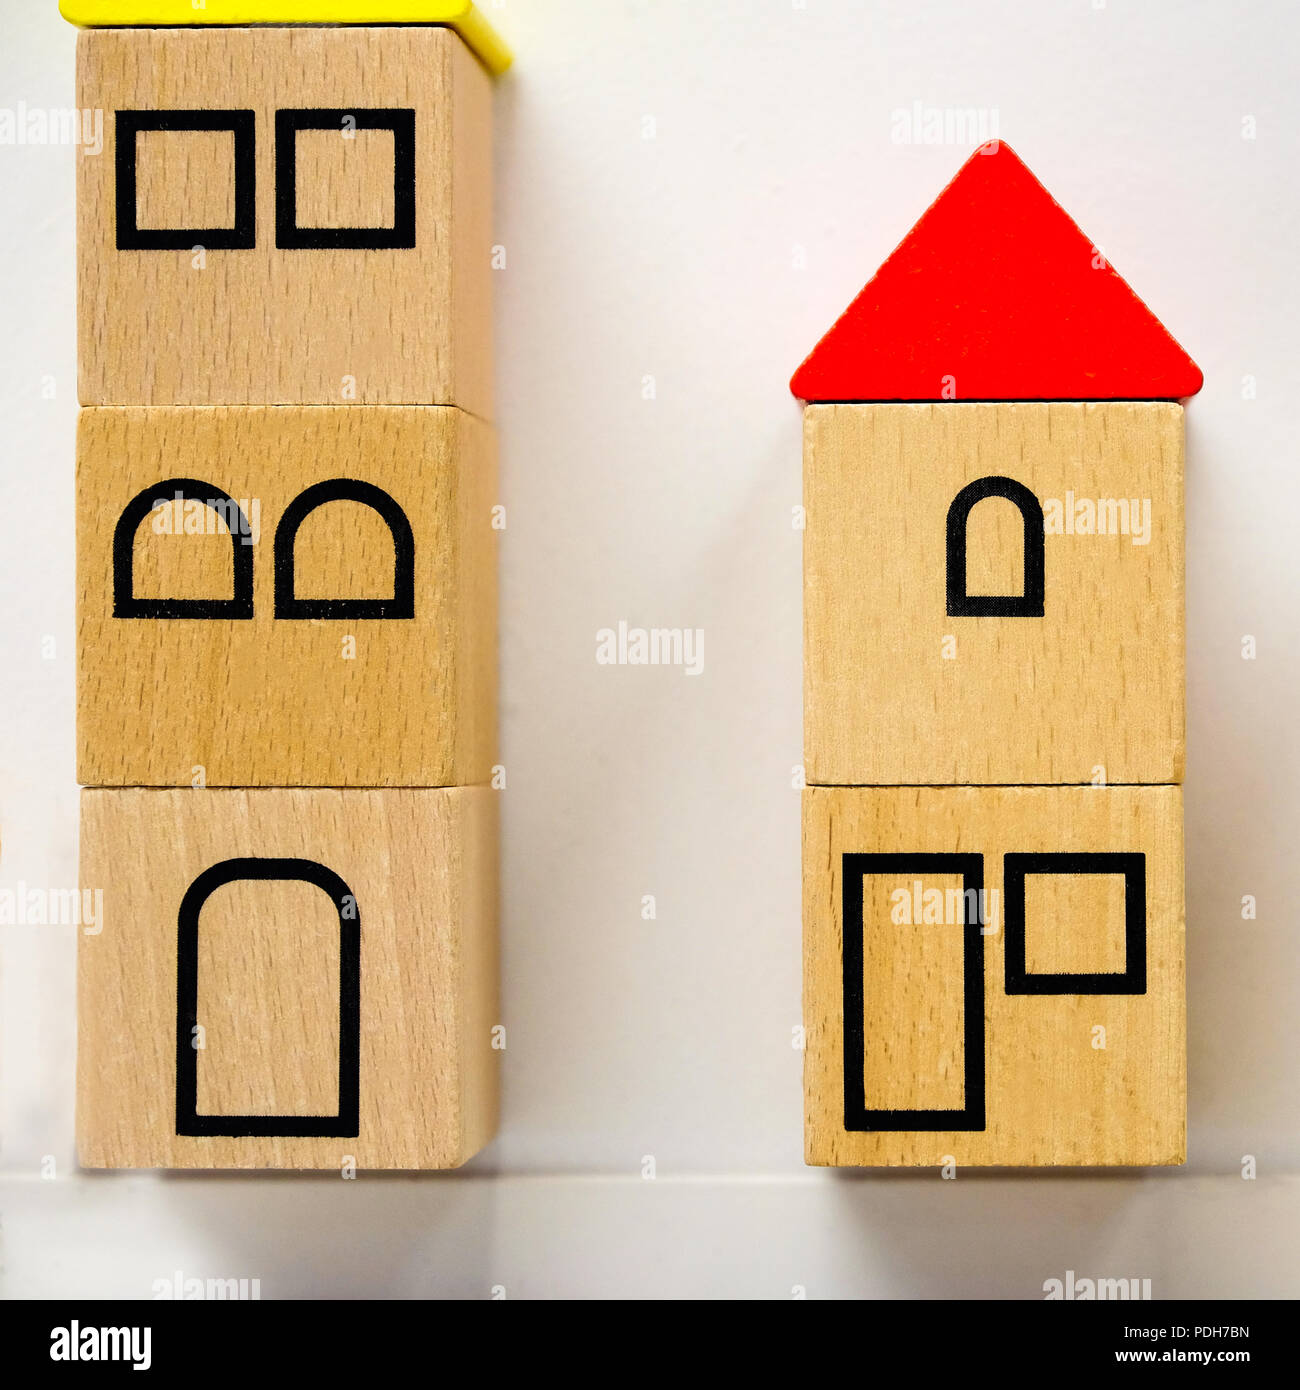 Fabulous Small Toy Houses Made Of Wooden Blocks With Painted Windows Home Interior And Landscaping Mentranervesignezvosmurscom